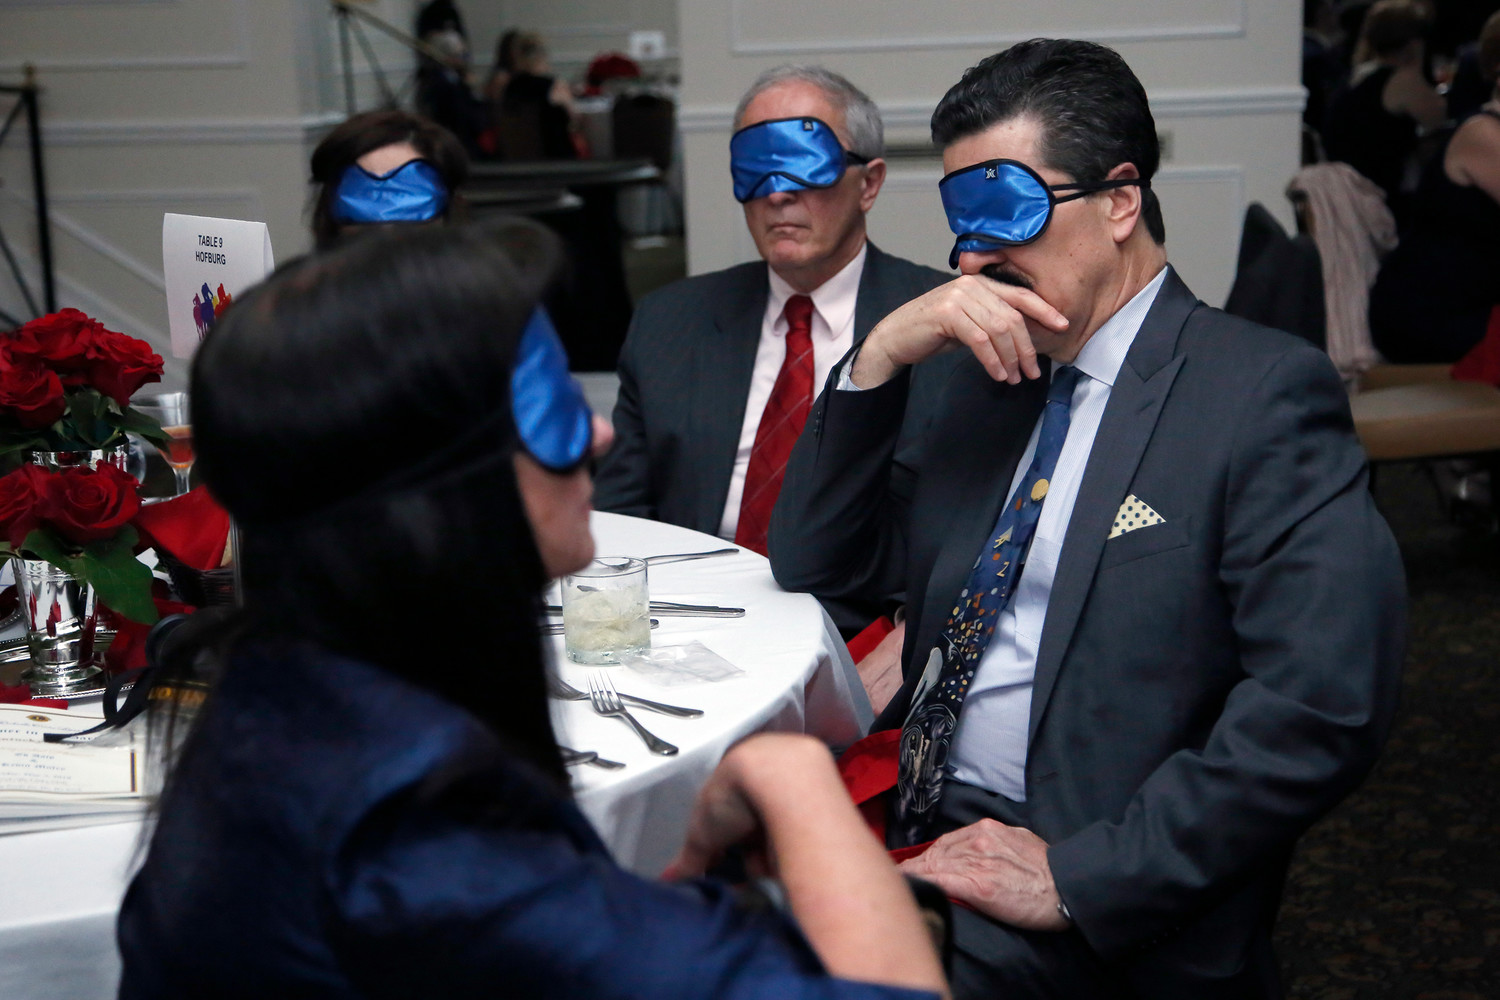 Attendees wore blindfolds during the May 4 event, in order to experience what it's like to be blind.